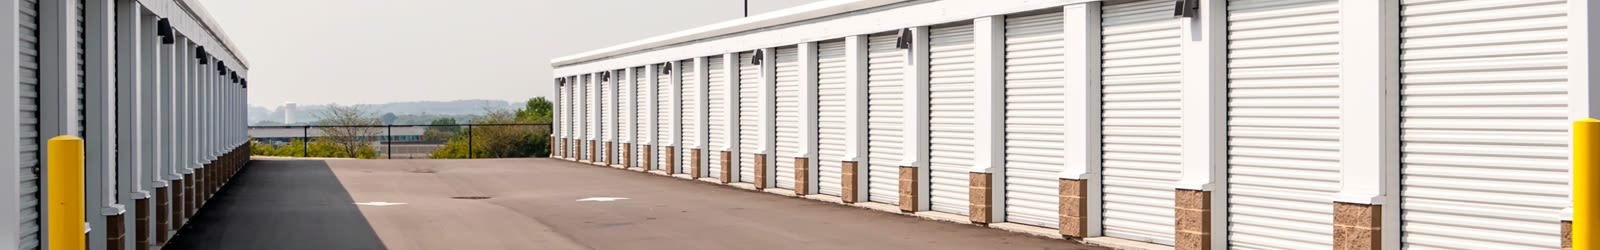 Contact us for your self storage needs in Burnsville